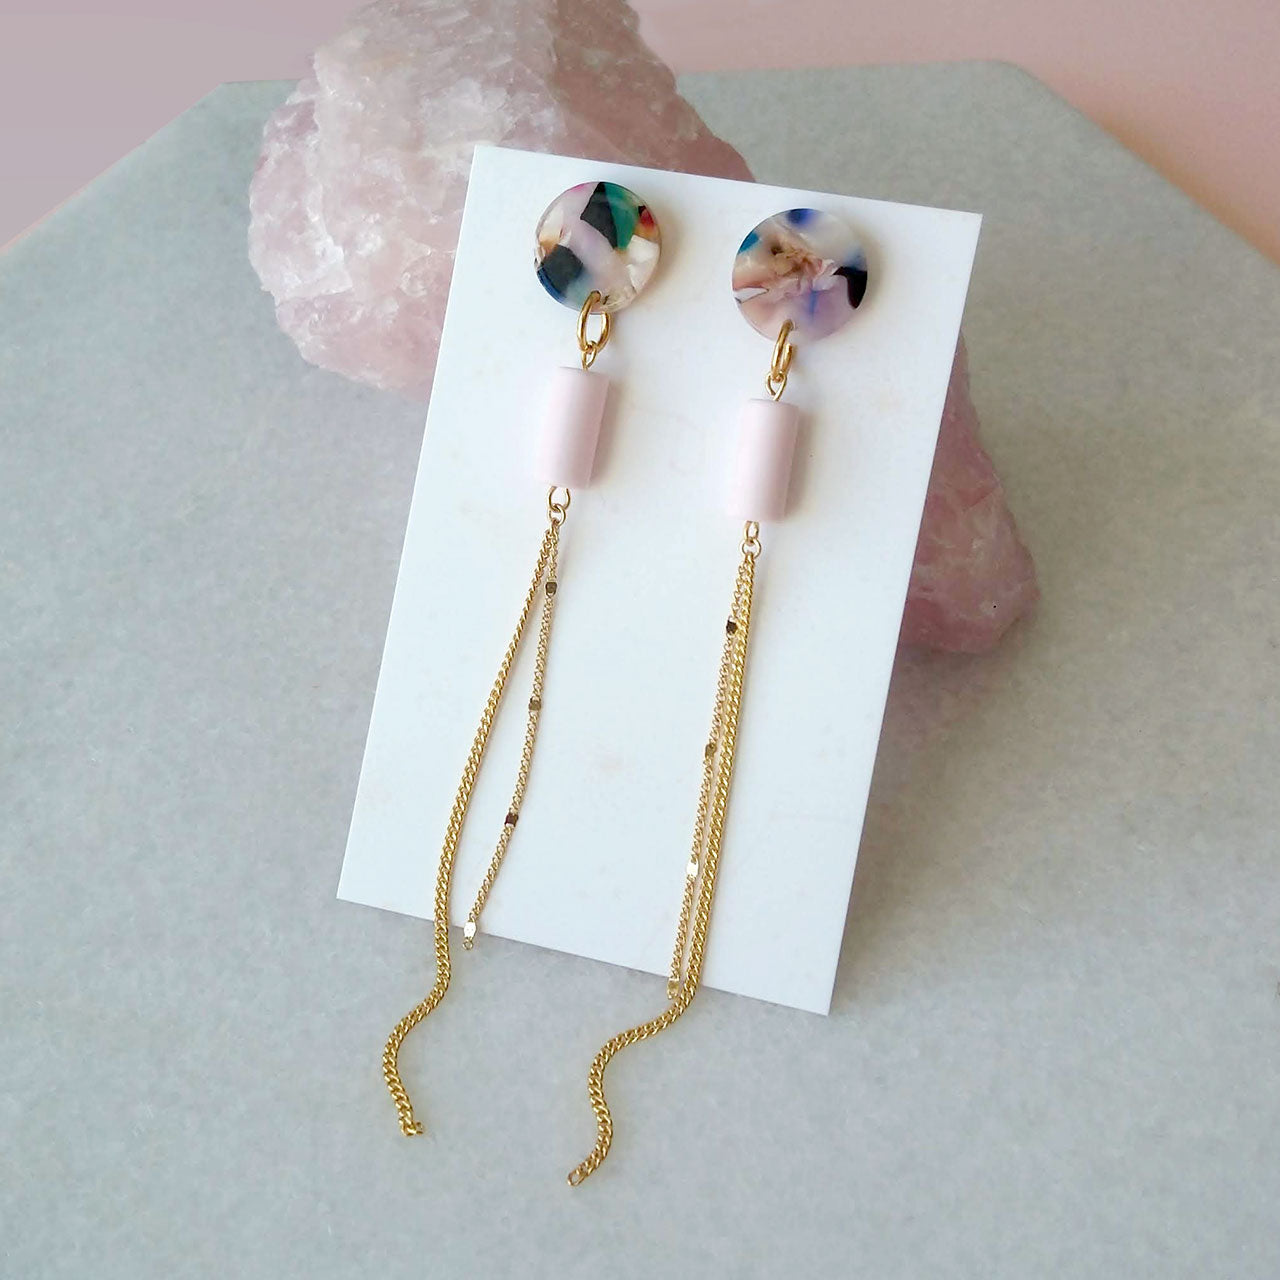 acetate earrings with tassel chains pink